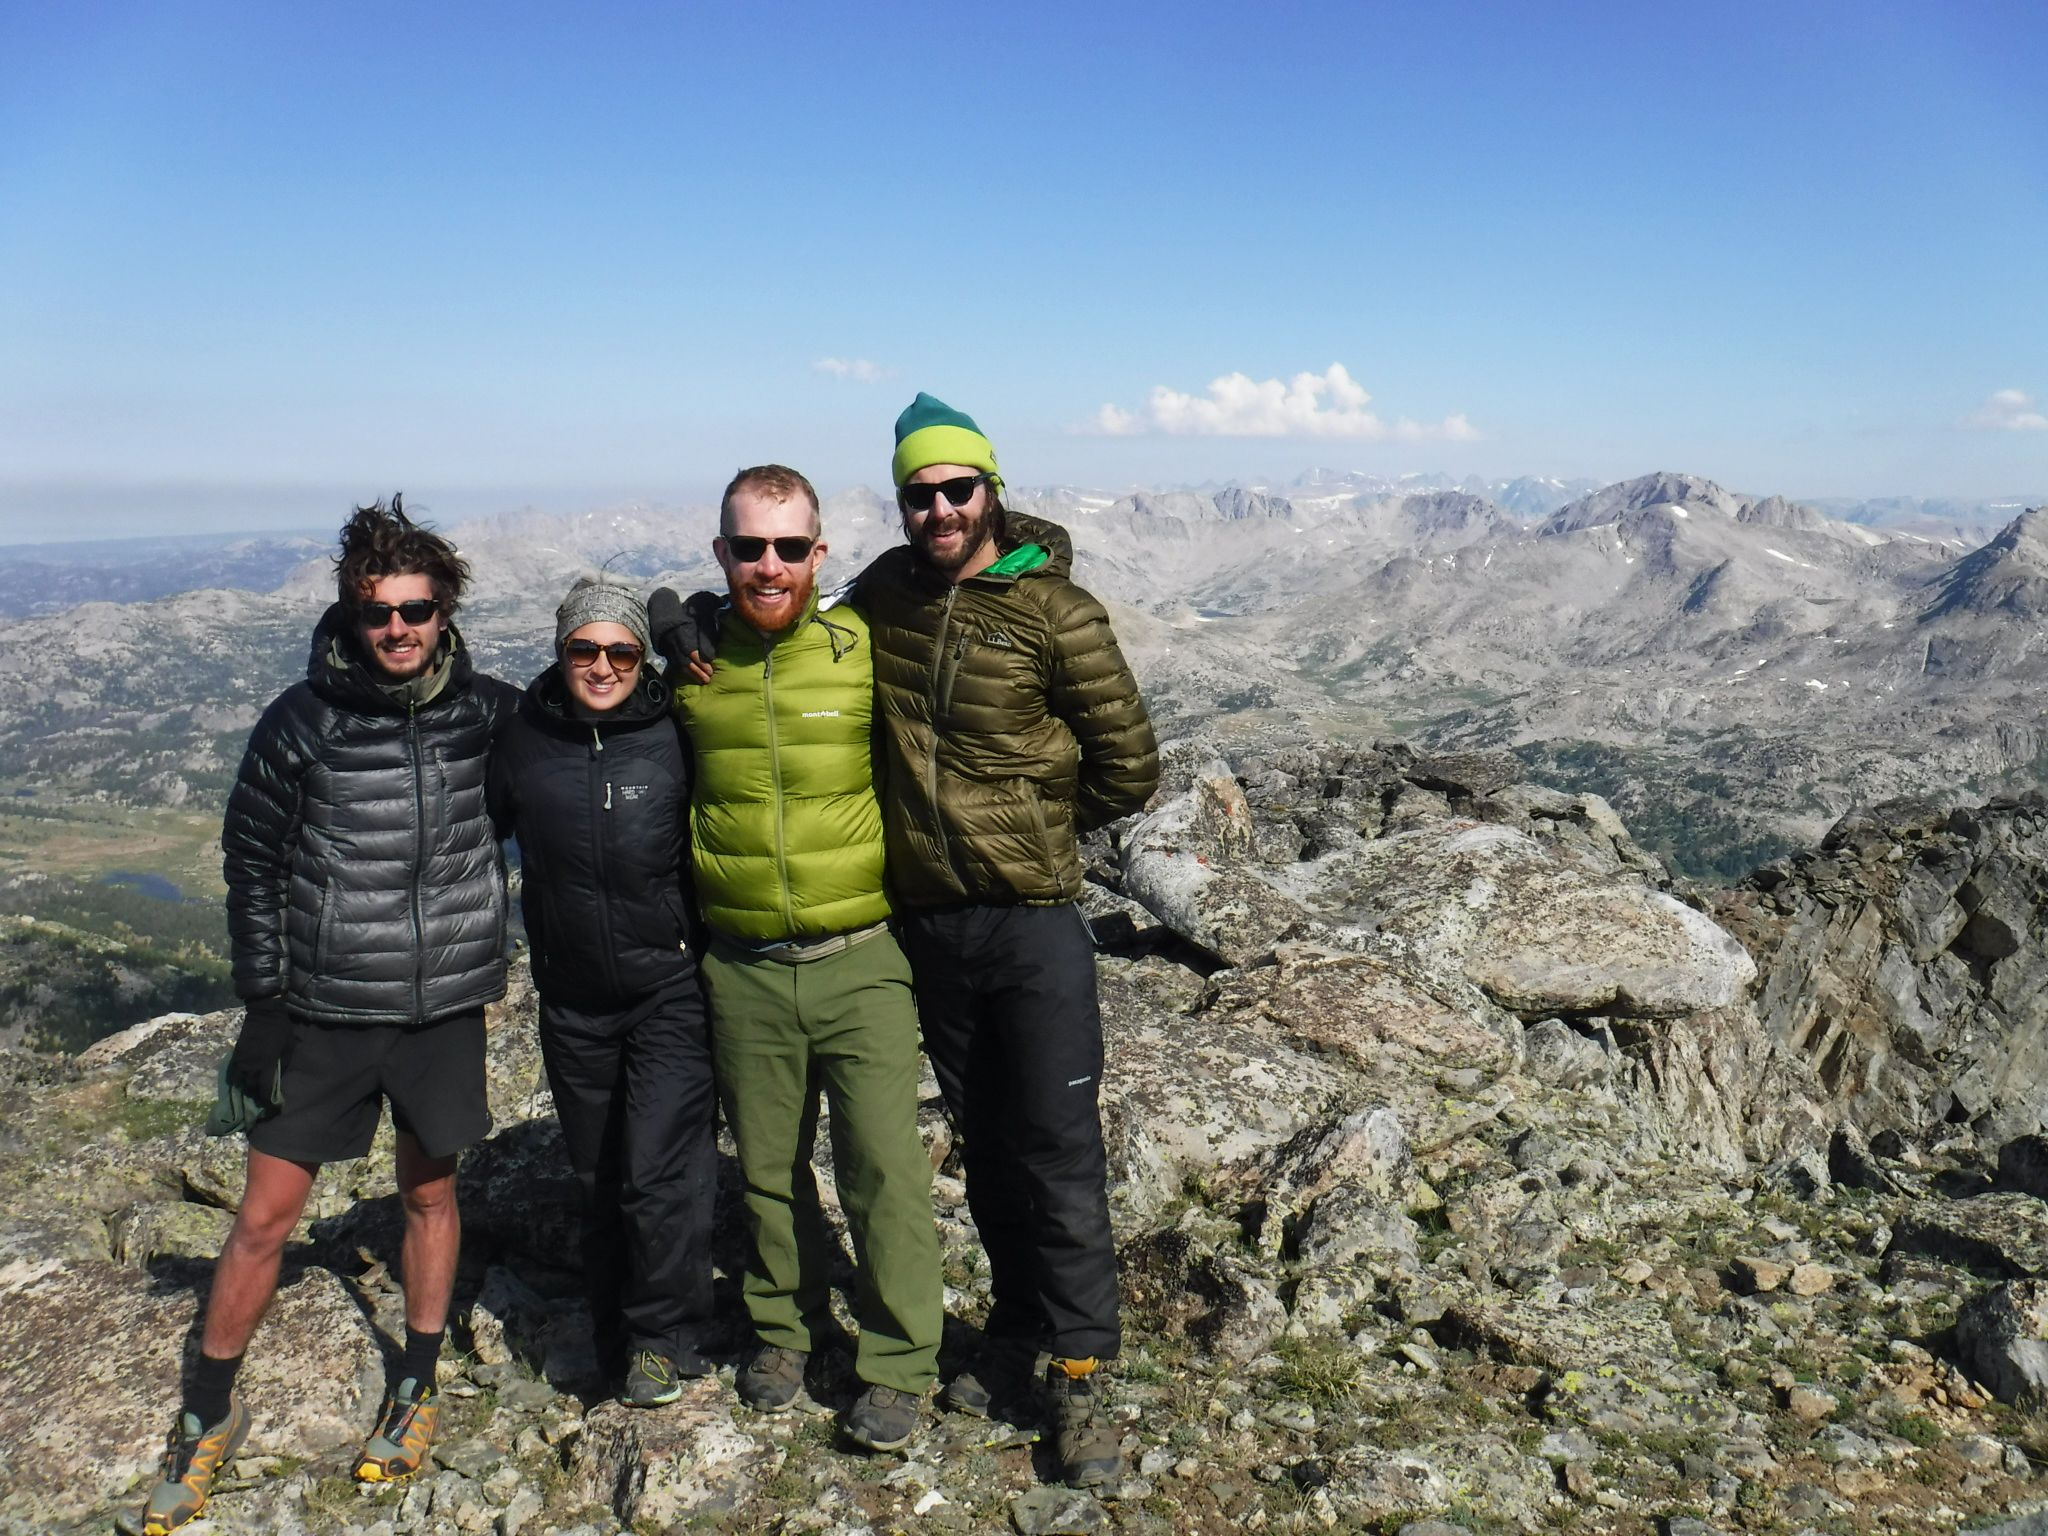 Summer Program - Hiking | NOLS Wind River Wilderness